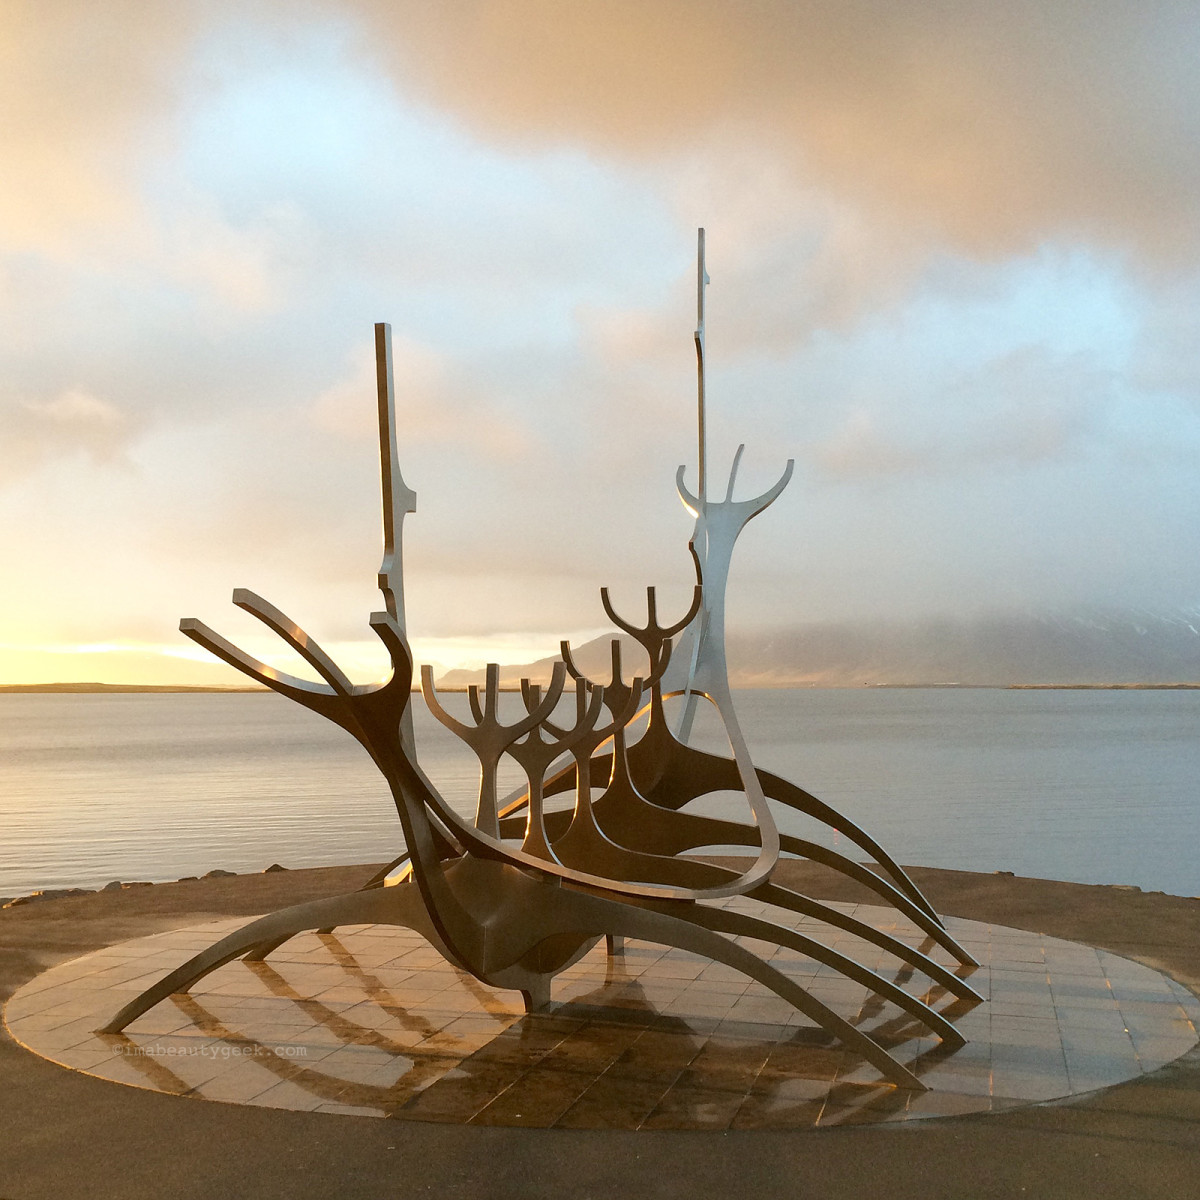 Sòlfar – The Sun Voyager sculpture in Reykjavik, Iceland